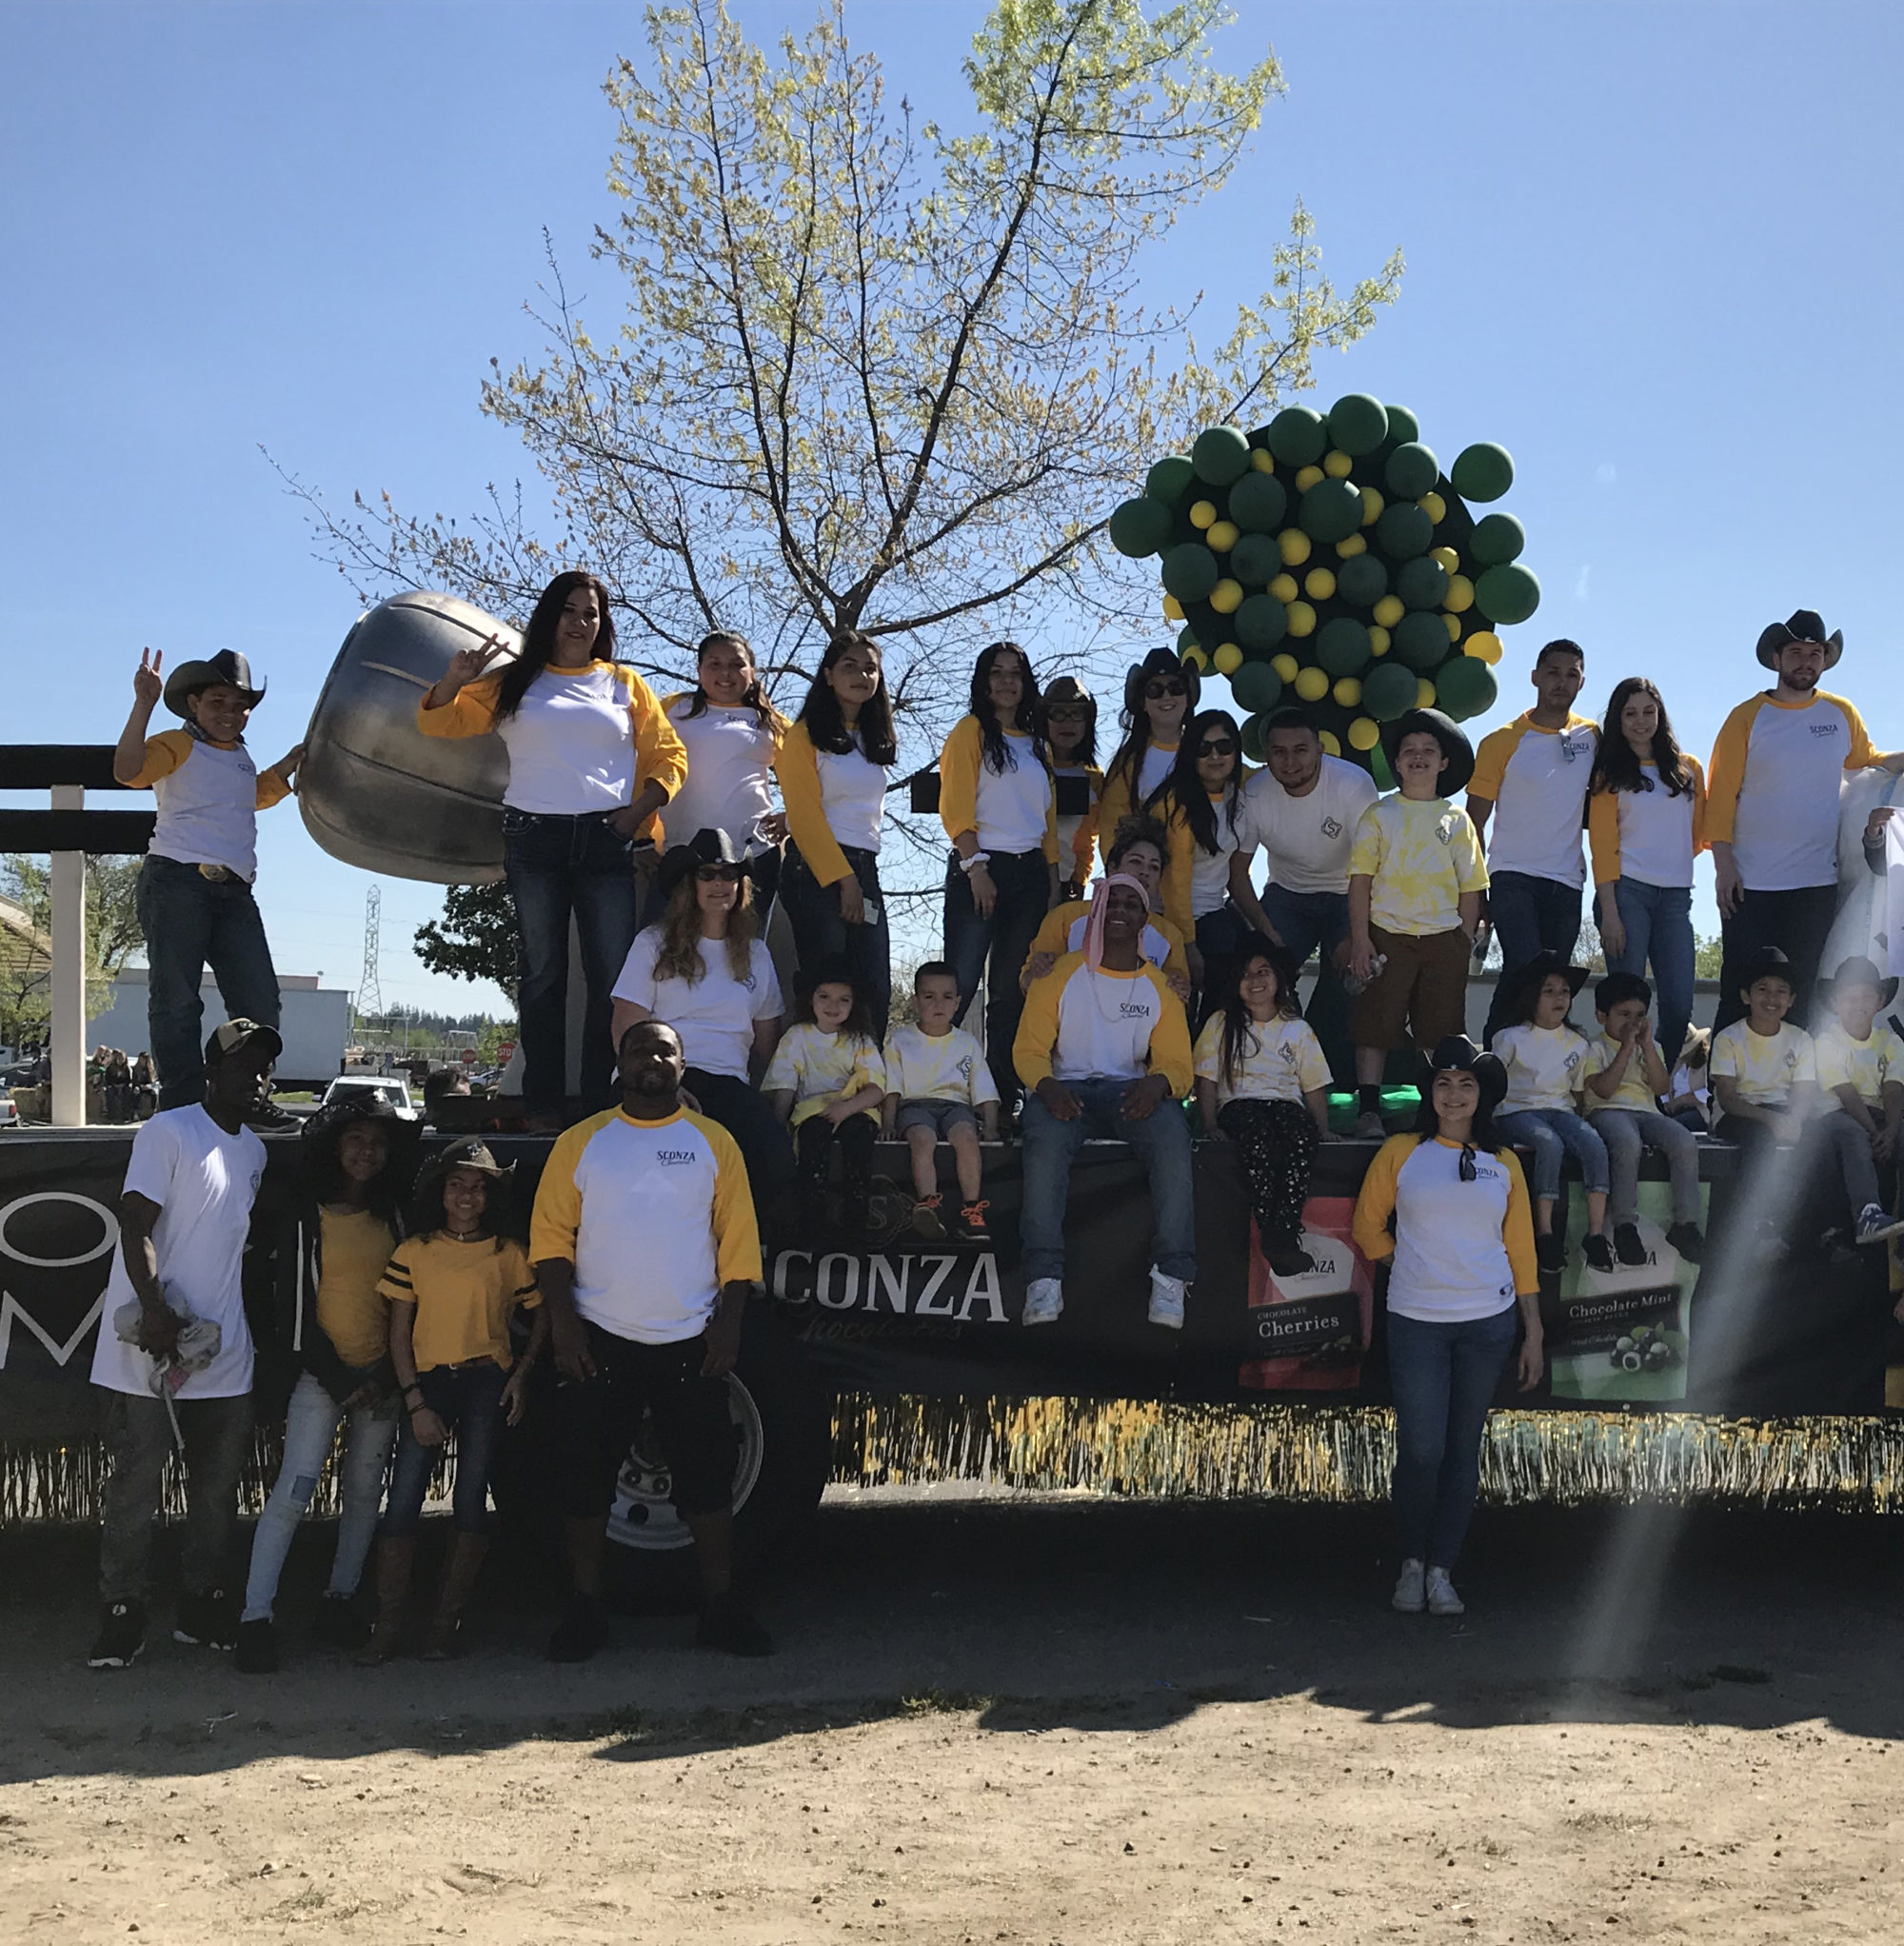 Sconza Chocolate employees on the Oakdale Rodeo float